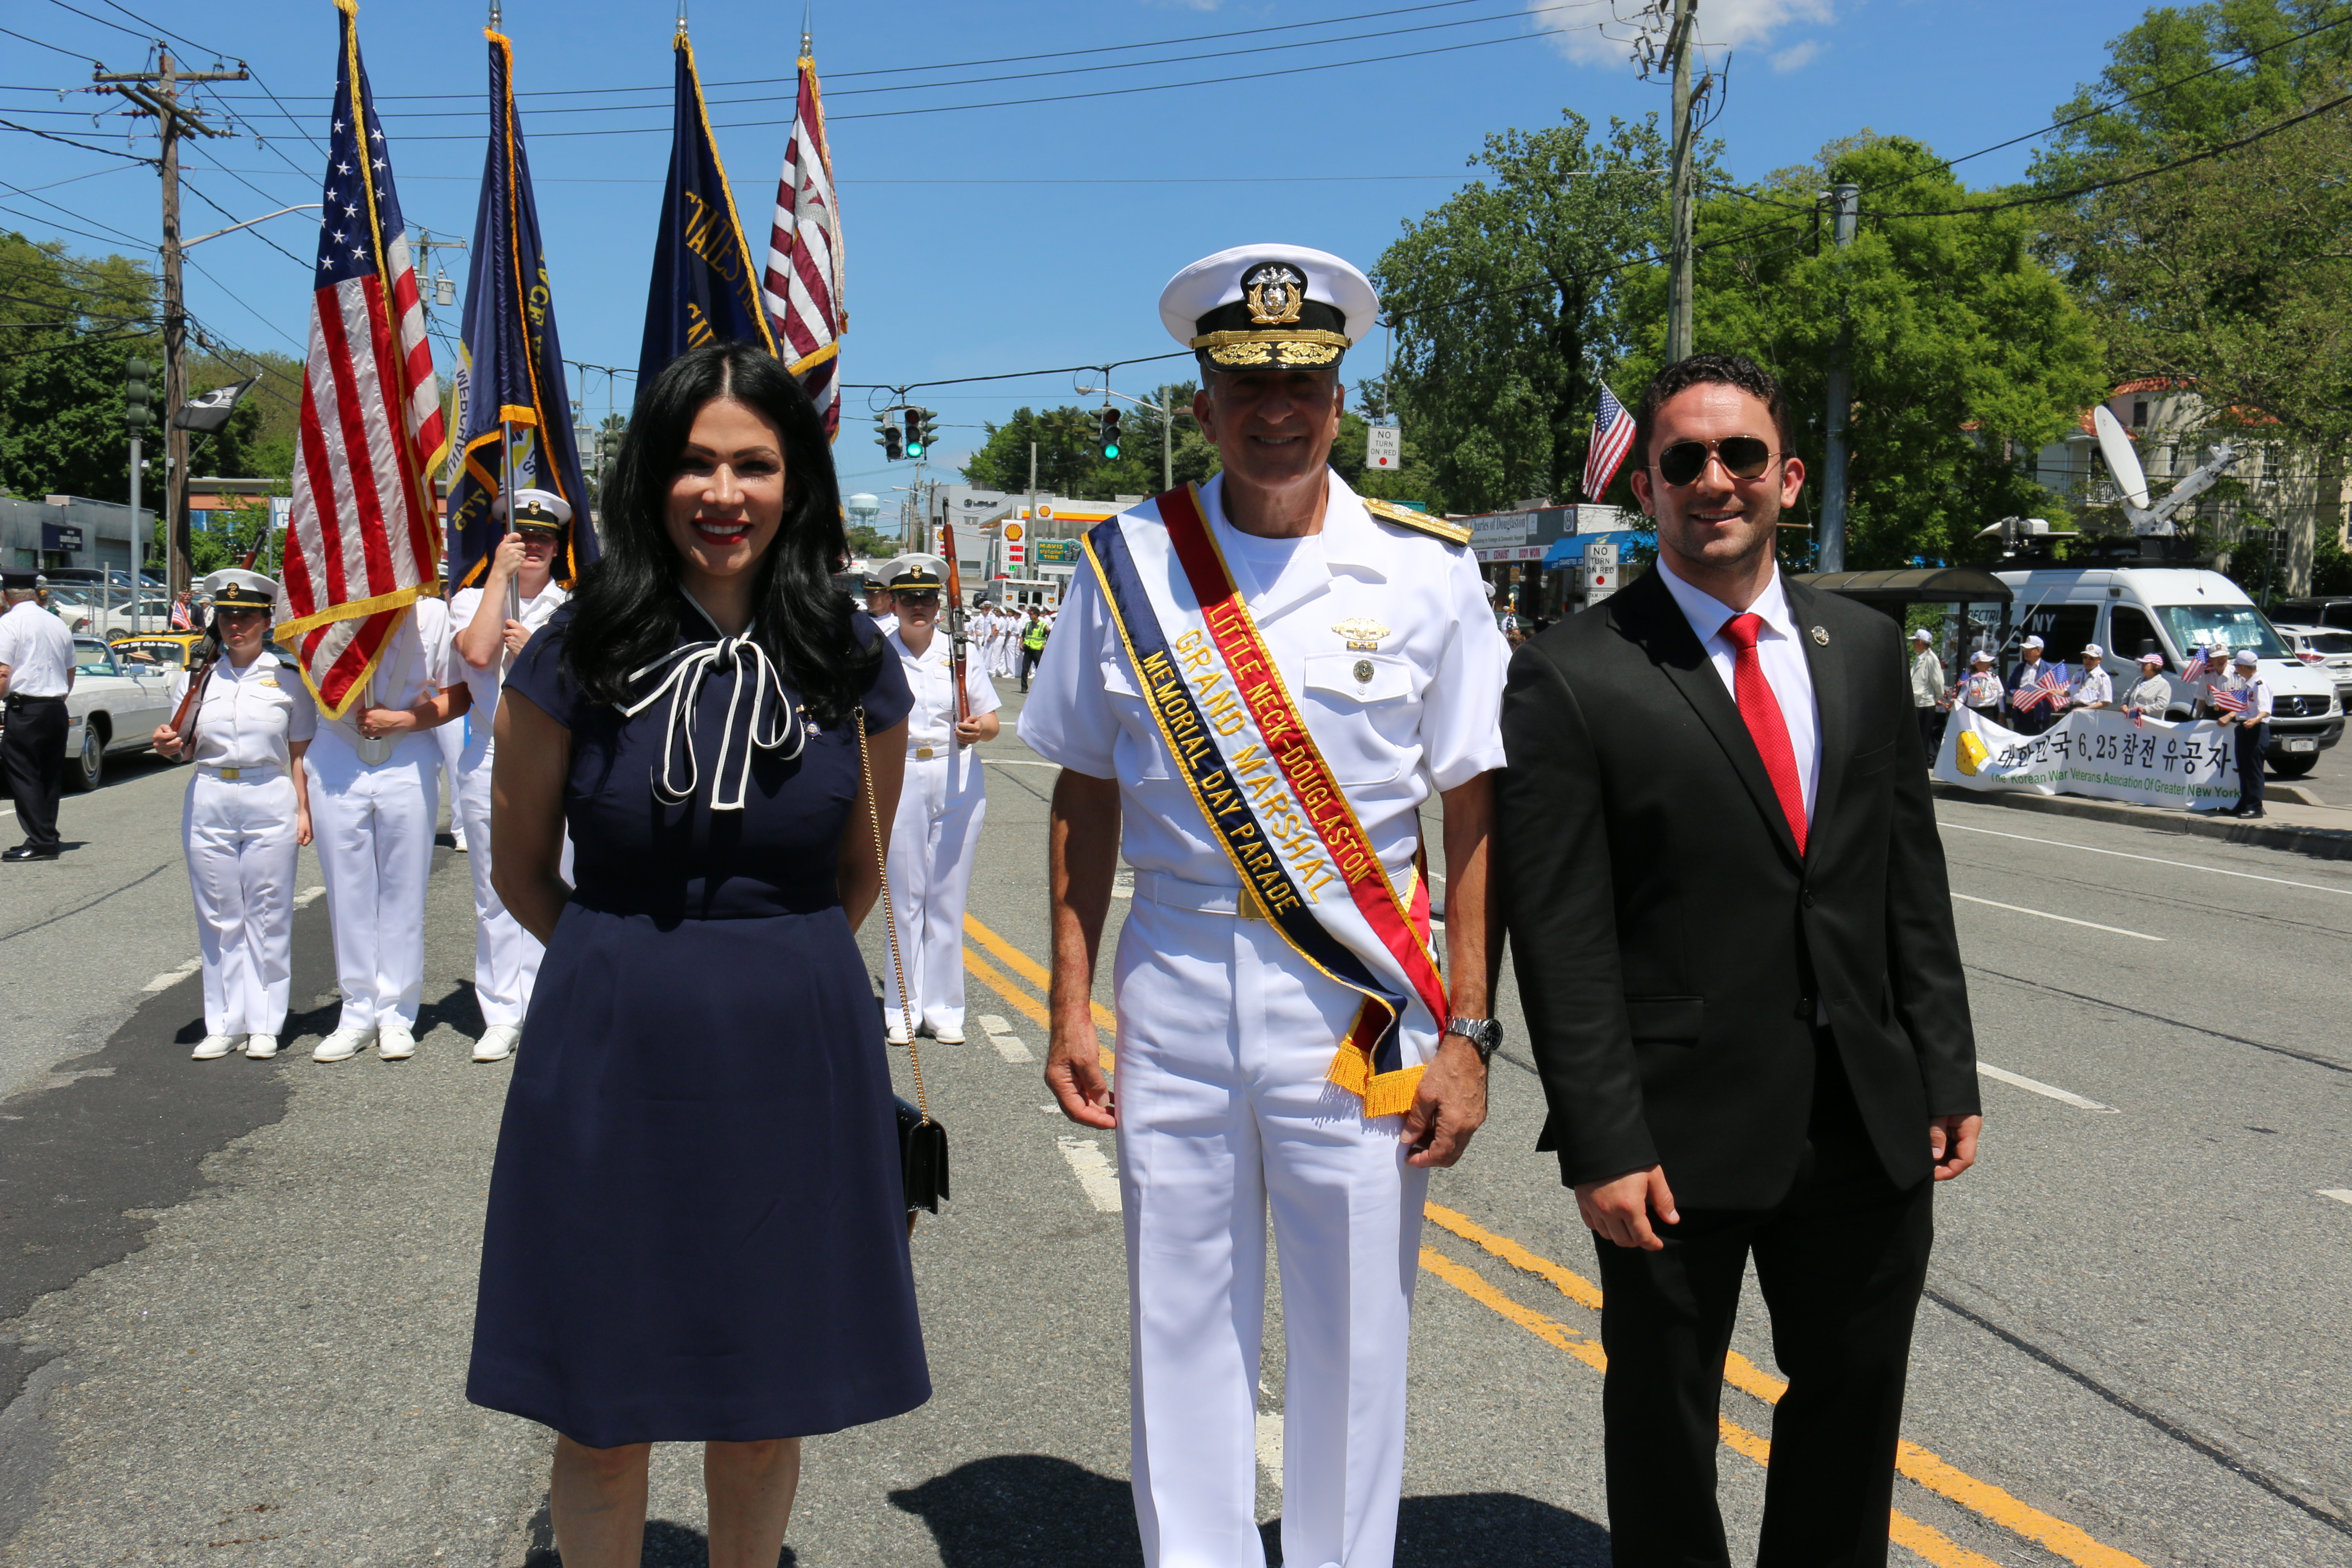 Ginger Delance, RADM Buono and John Buono followed by our Regimental Color Guard